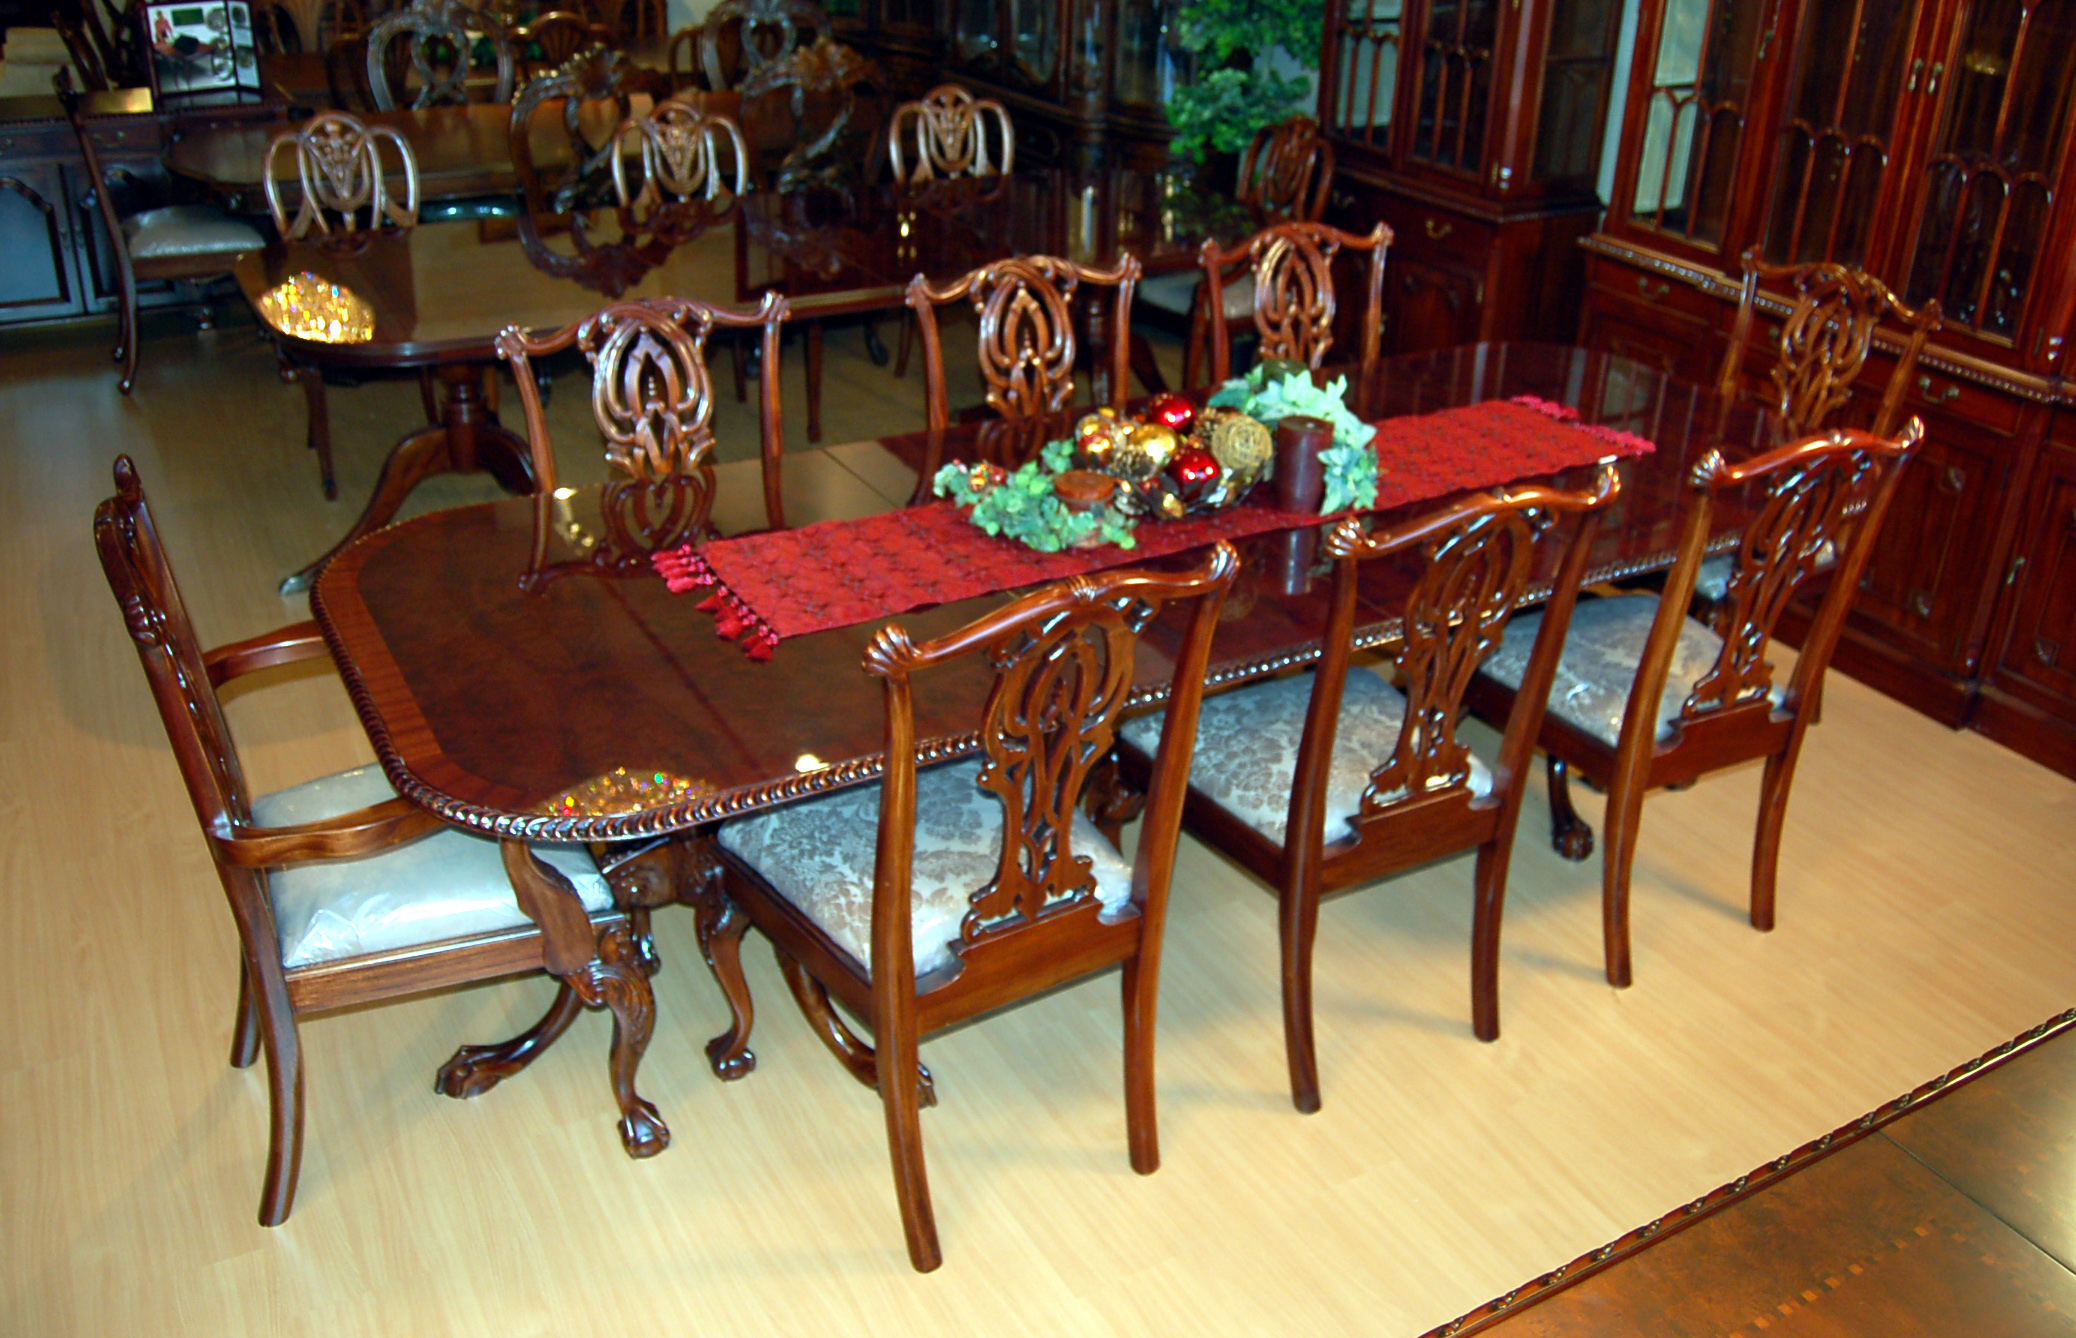 9 Piece Mahogany Chippendale Dining Set eBay : fullview1exp from ebay.com size 2076 x 1338 jpeg 1175kB